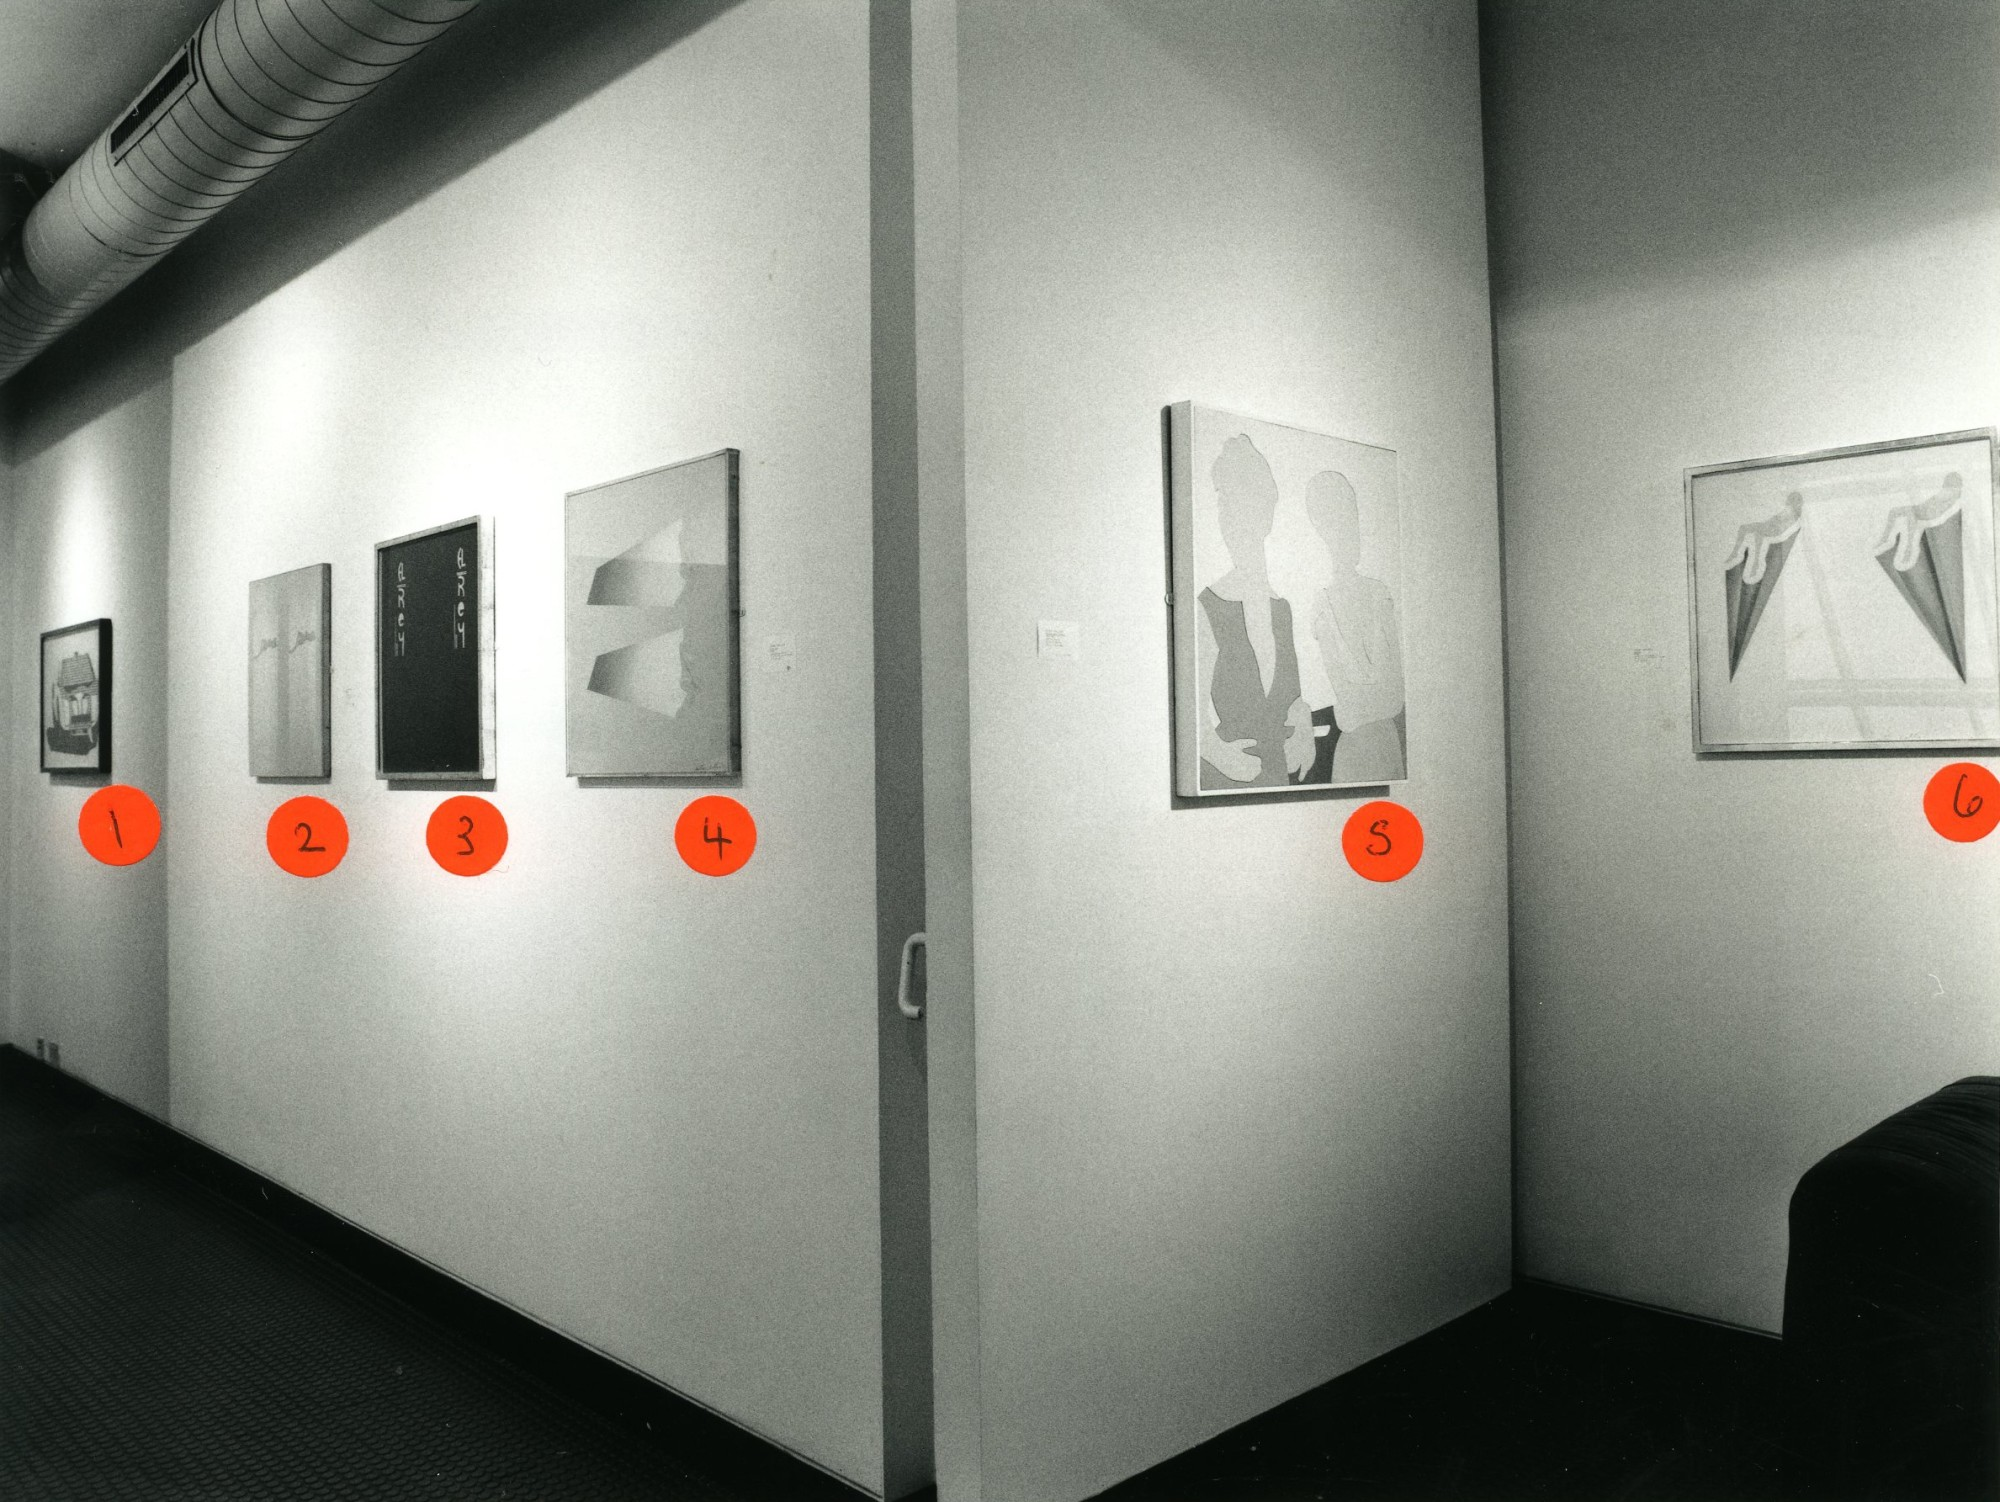 """<span class=""""link fancybox-details-link""""><a href=""""/exhibitions/156/works/image_standalone678/"""">View Detail Page</a></span><p>ANTONY DONALDSON 